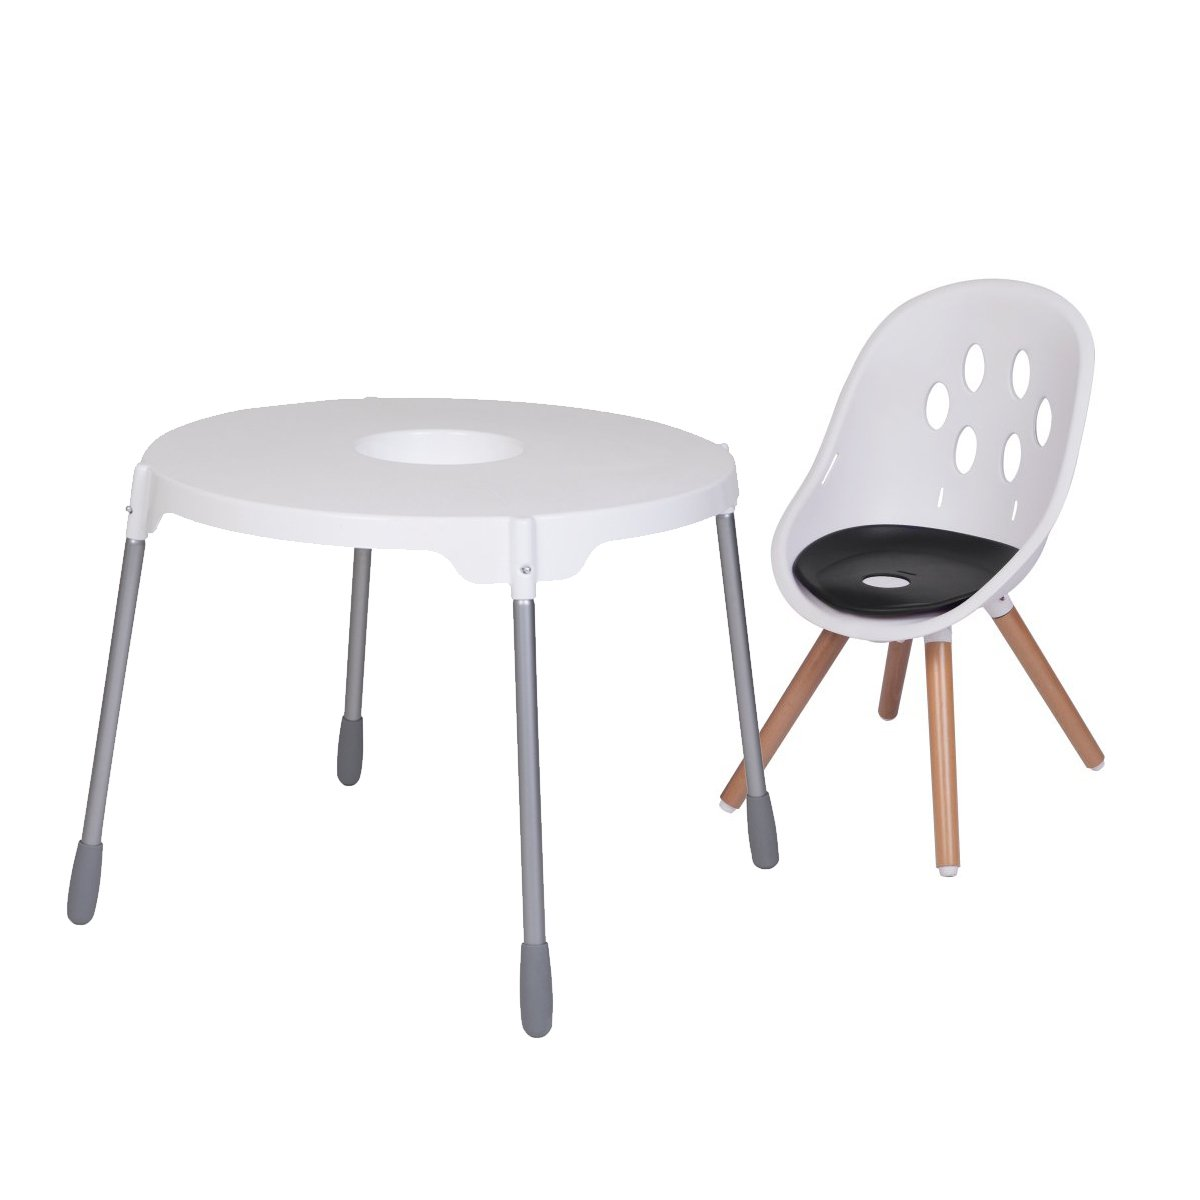 https://cdn.accentuate.io/4675449815136/19440099492024/phil_and_teds_poppy_wood_leg_high_chair_to_my_chair_dual_modes_1_combo-v1630984568942.jpg?1200x1200